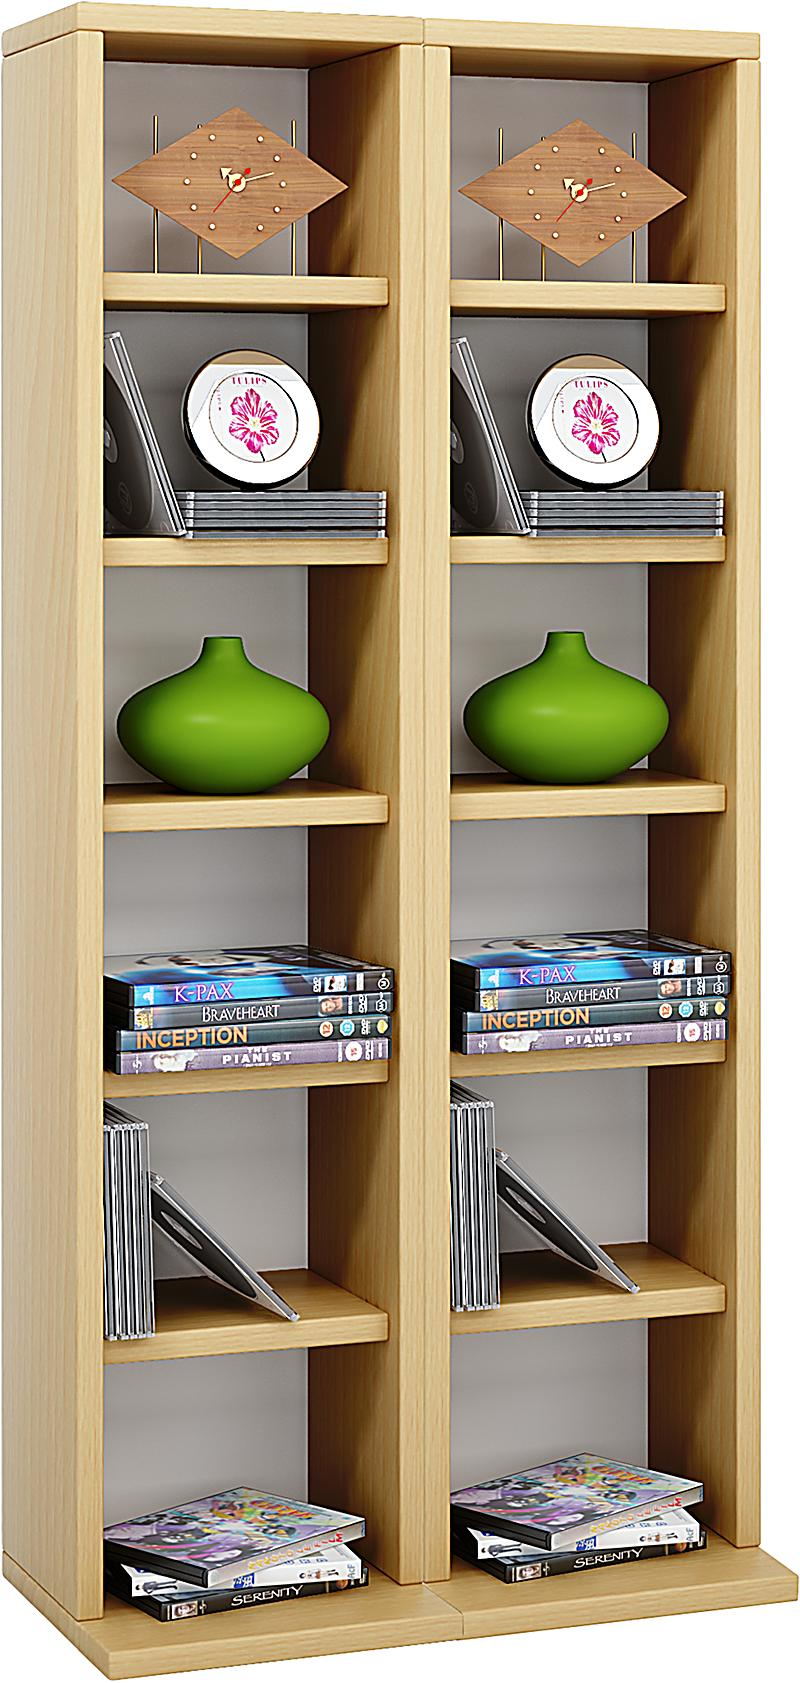 vcm regal dvd cd rack m bel aufbewahrung holzregal standregal m bel anbauprogramm milano farbe. Black Bedroom Furniture Sets. Home Design Ideas